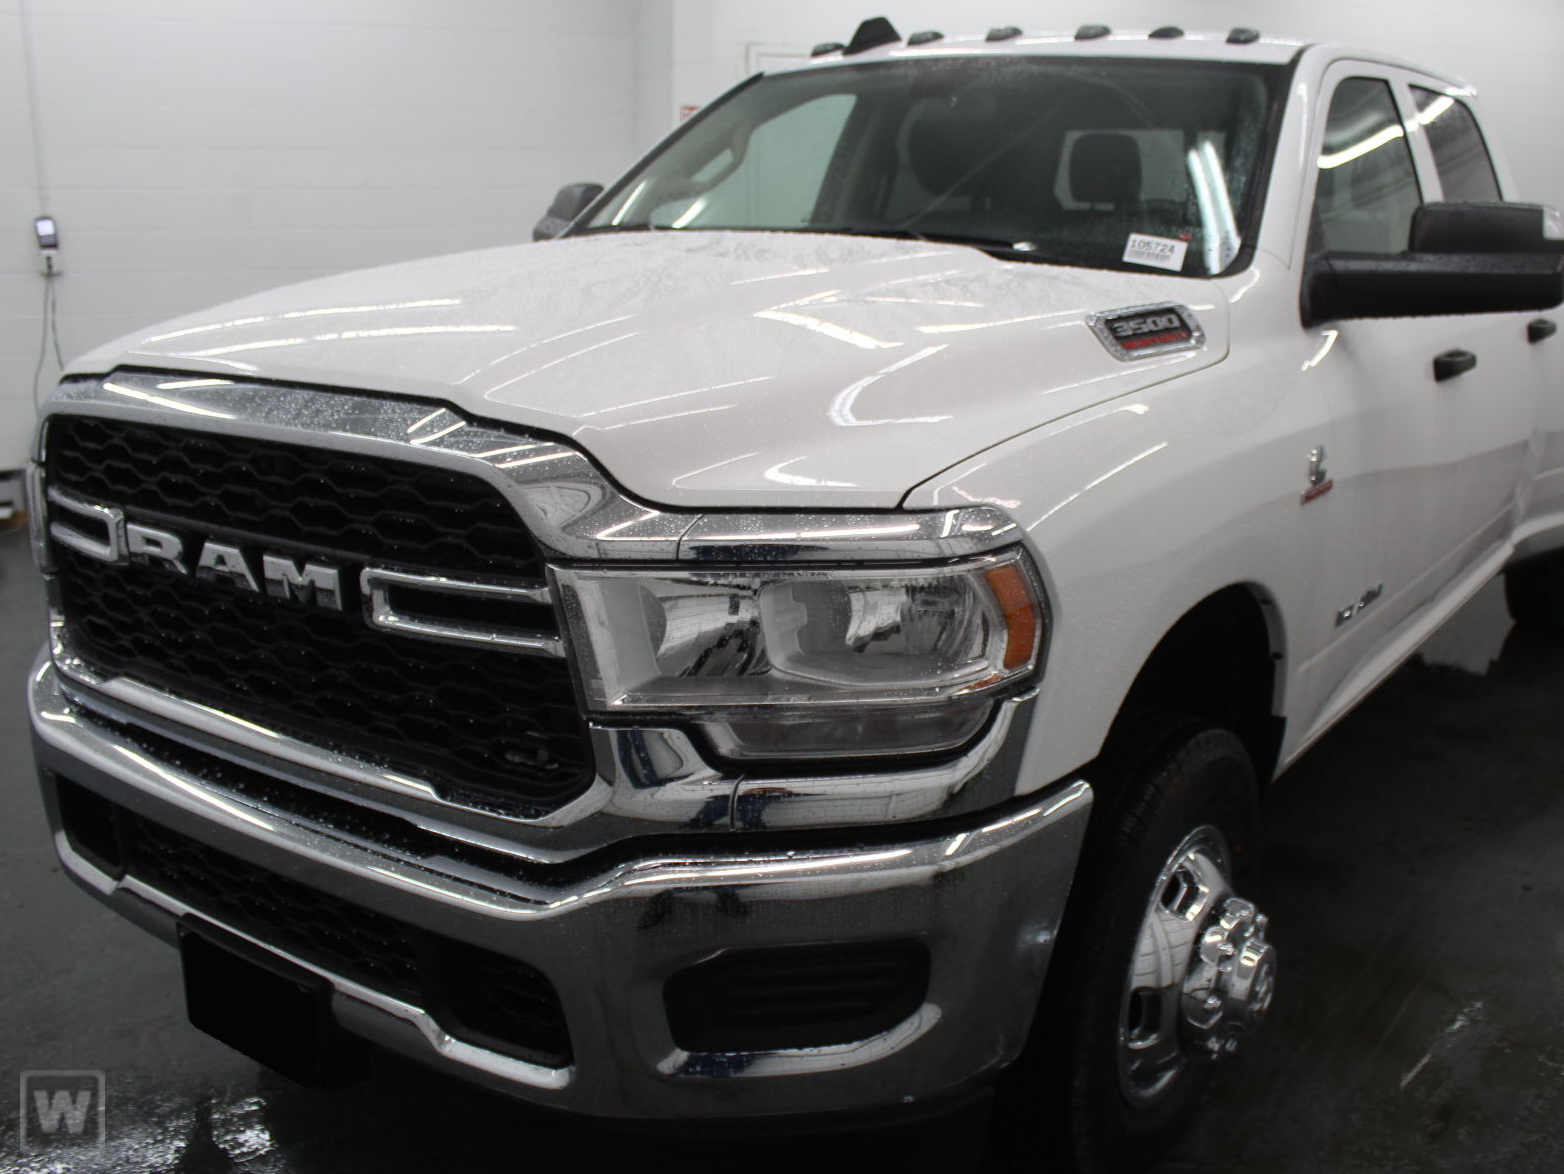 2020 Ram 3500 Crew Cab 4x4, Pickup #237809 - photo 1